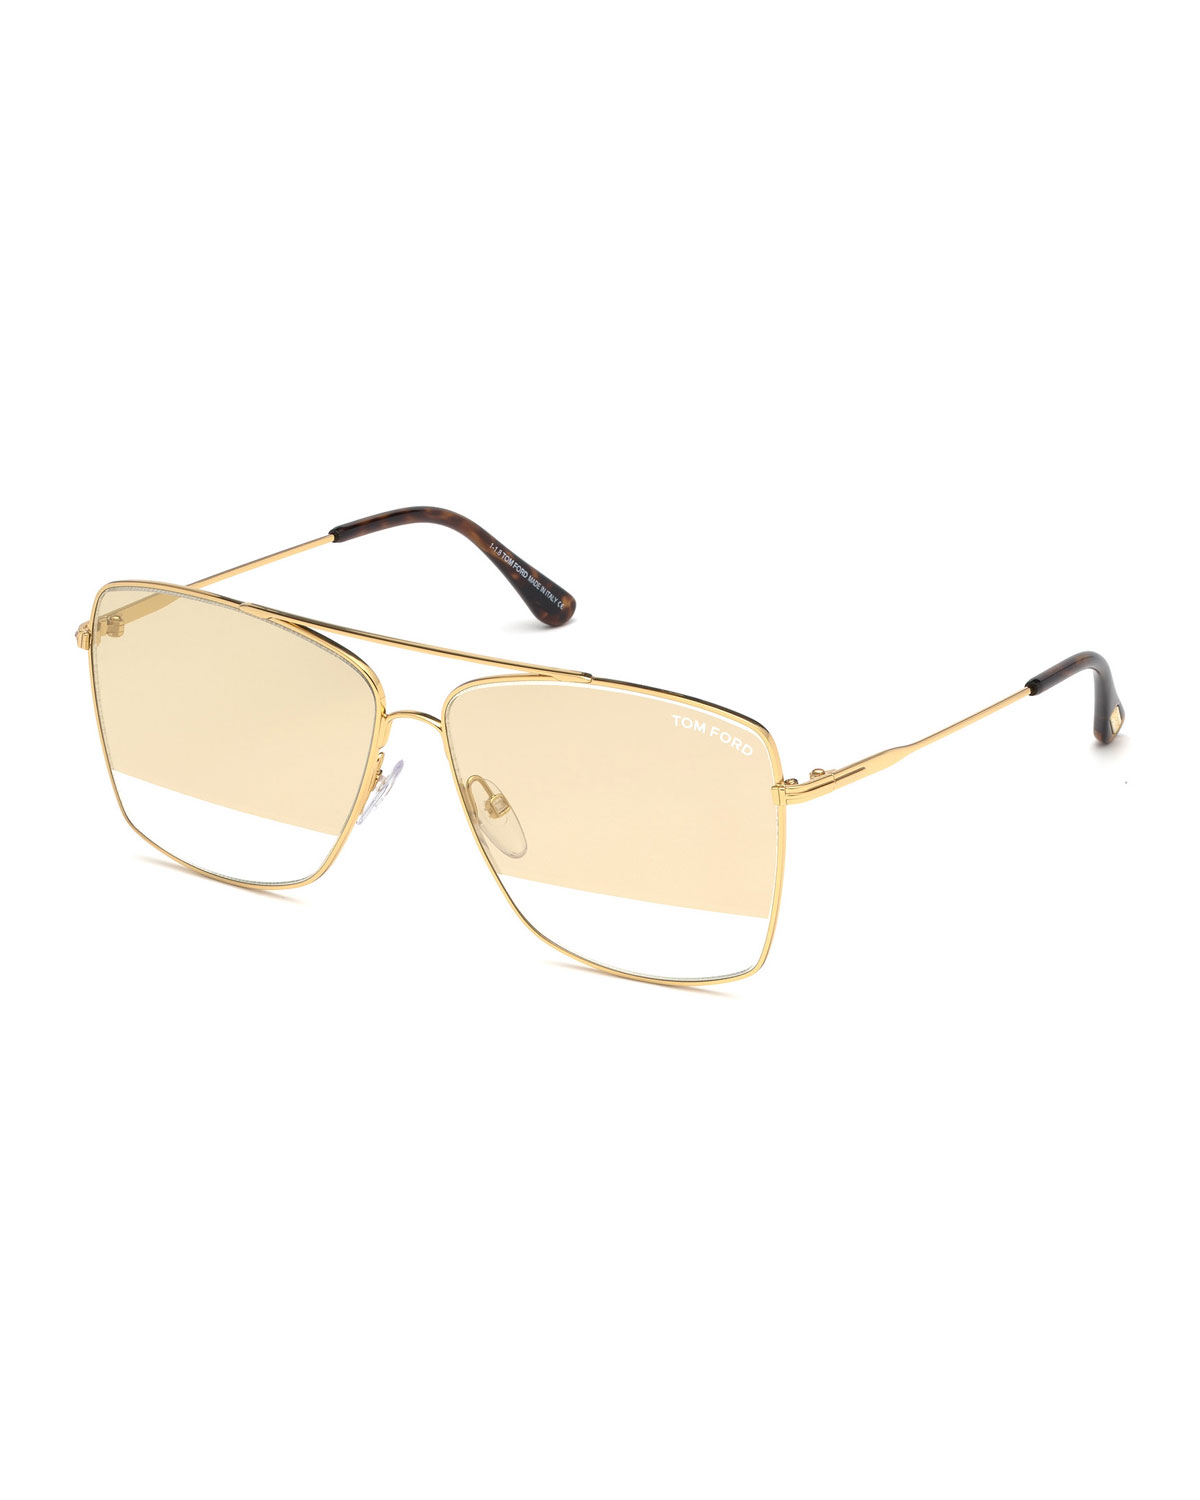 503f1baacbc5 TOM FORD Men s Magnus Golden Metal Sunglasses